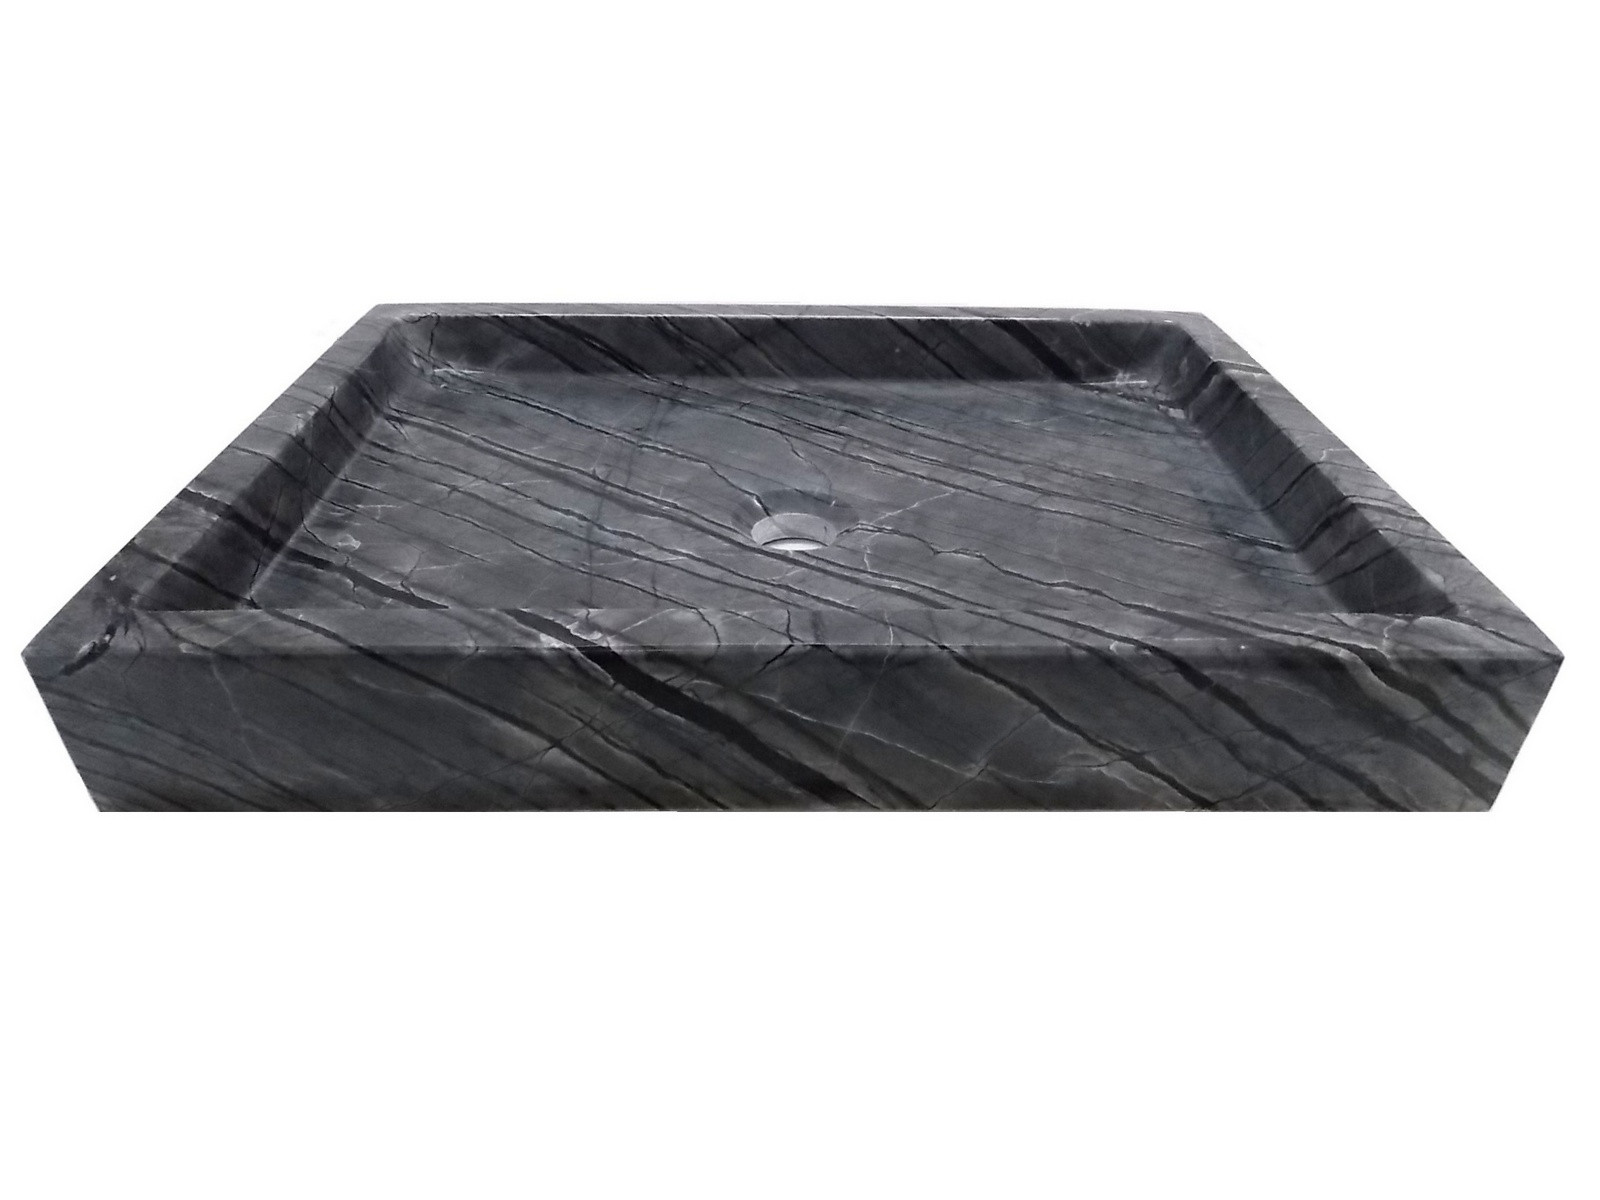 Eden Bath EB_S040WB-P Rectangular Vessel Sink In Wooden Black Marble